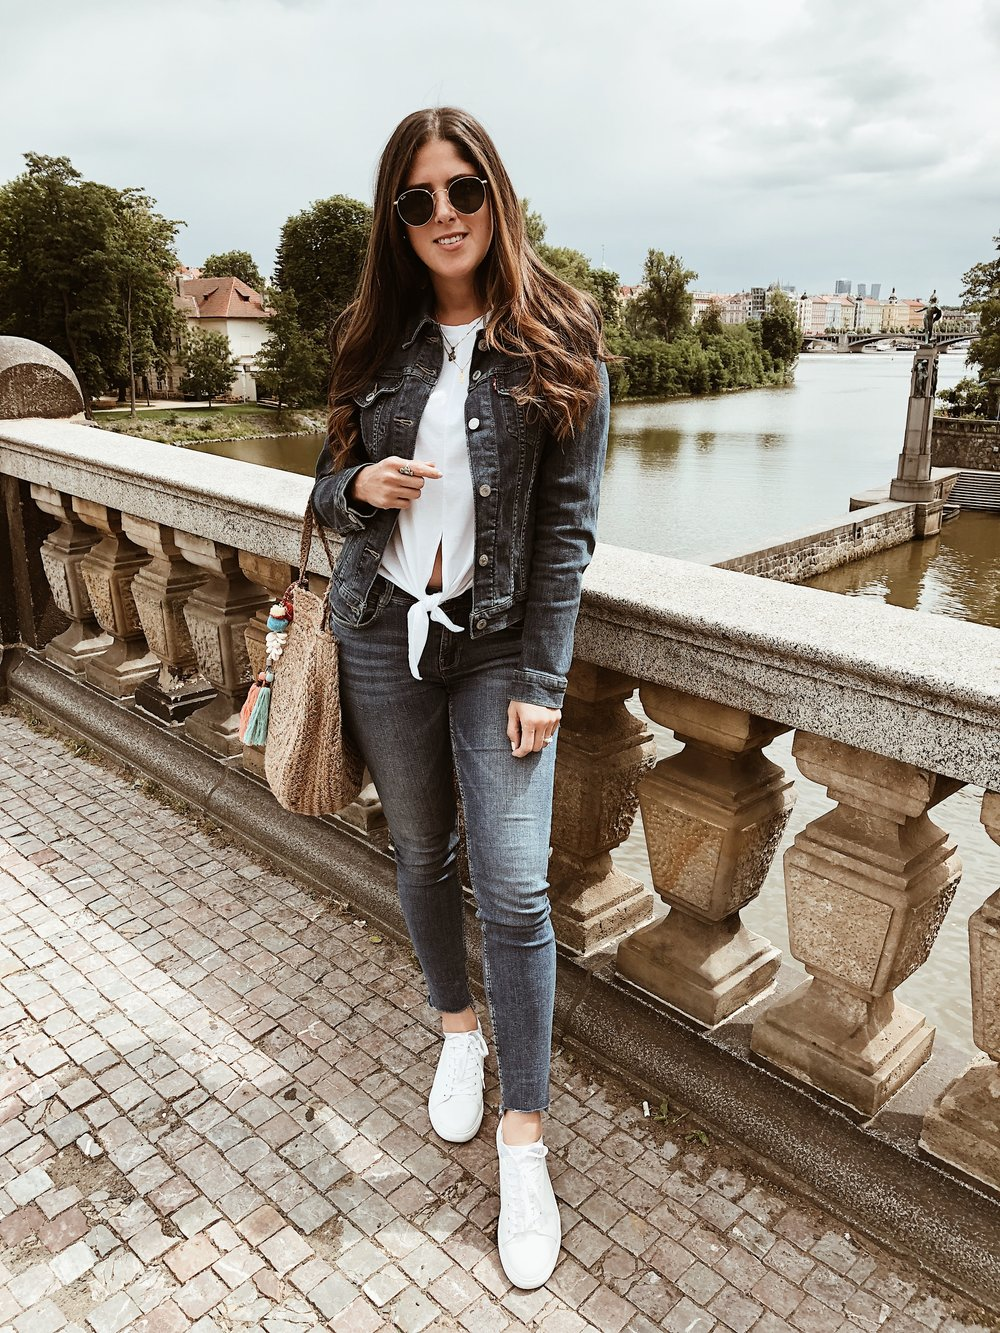 Prague, 2018. Wore jeans for a whole denim look!